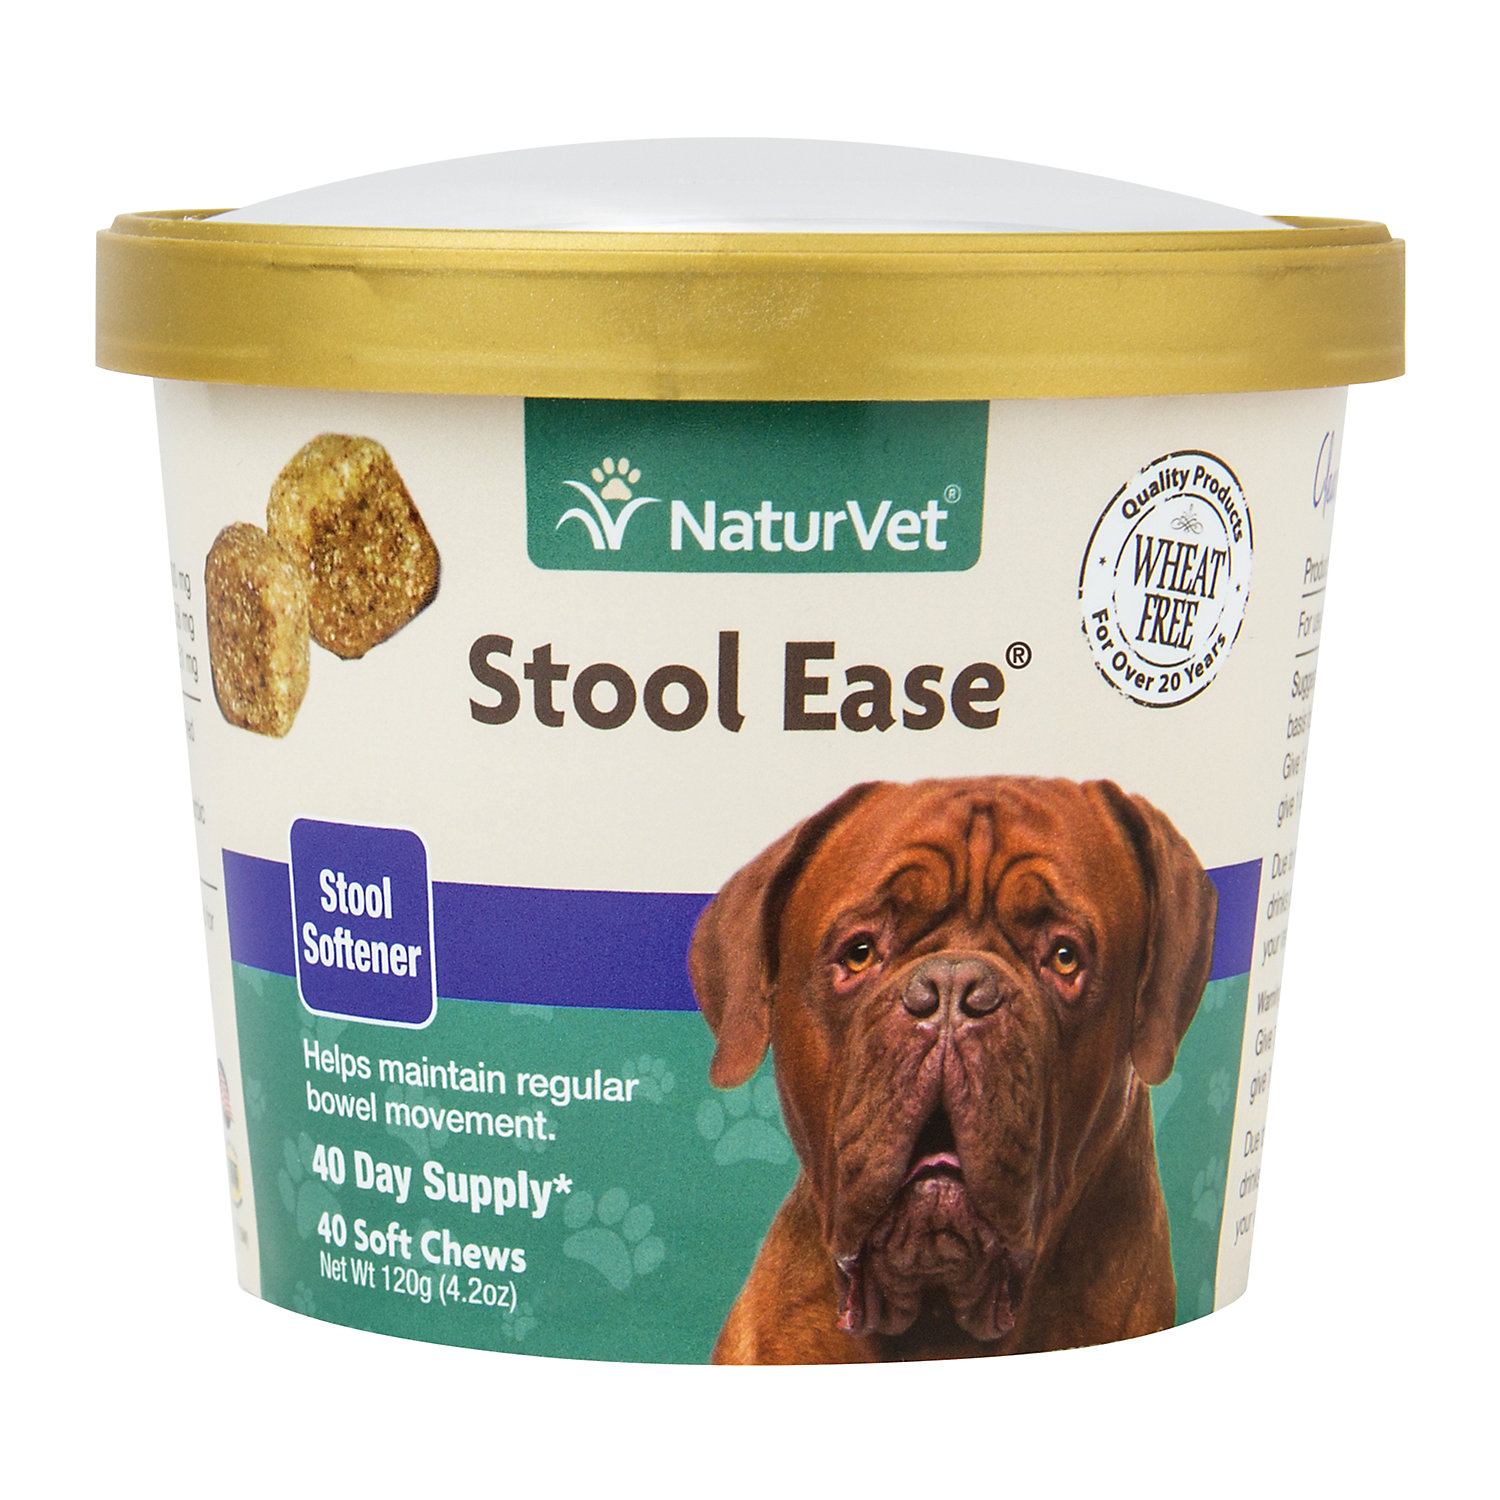 Naturvet Stool Ease Stool Softener Dog Soft Chews Pack Of 40 Chews